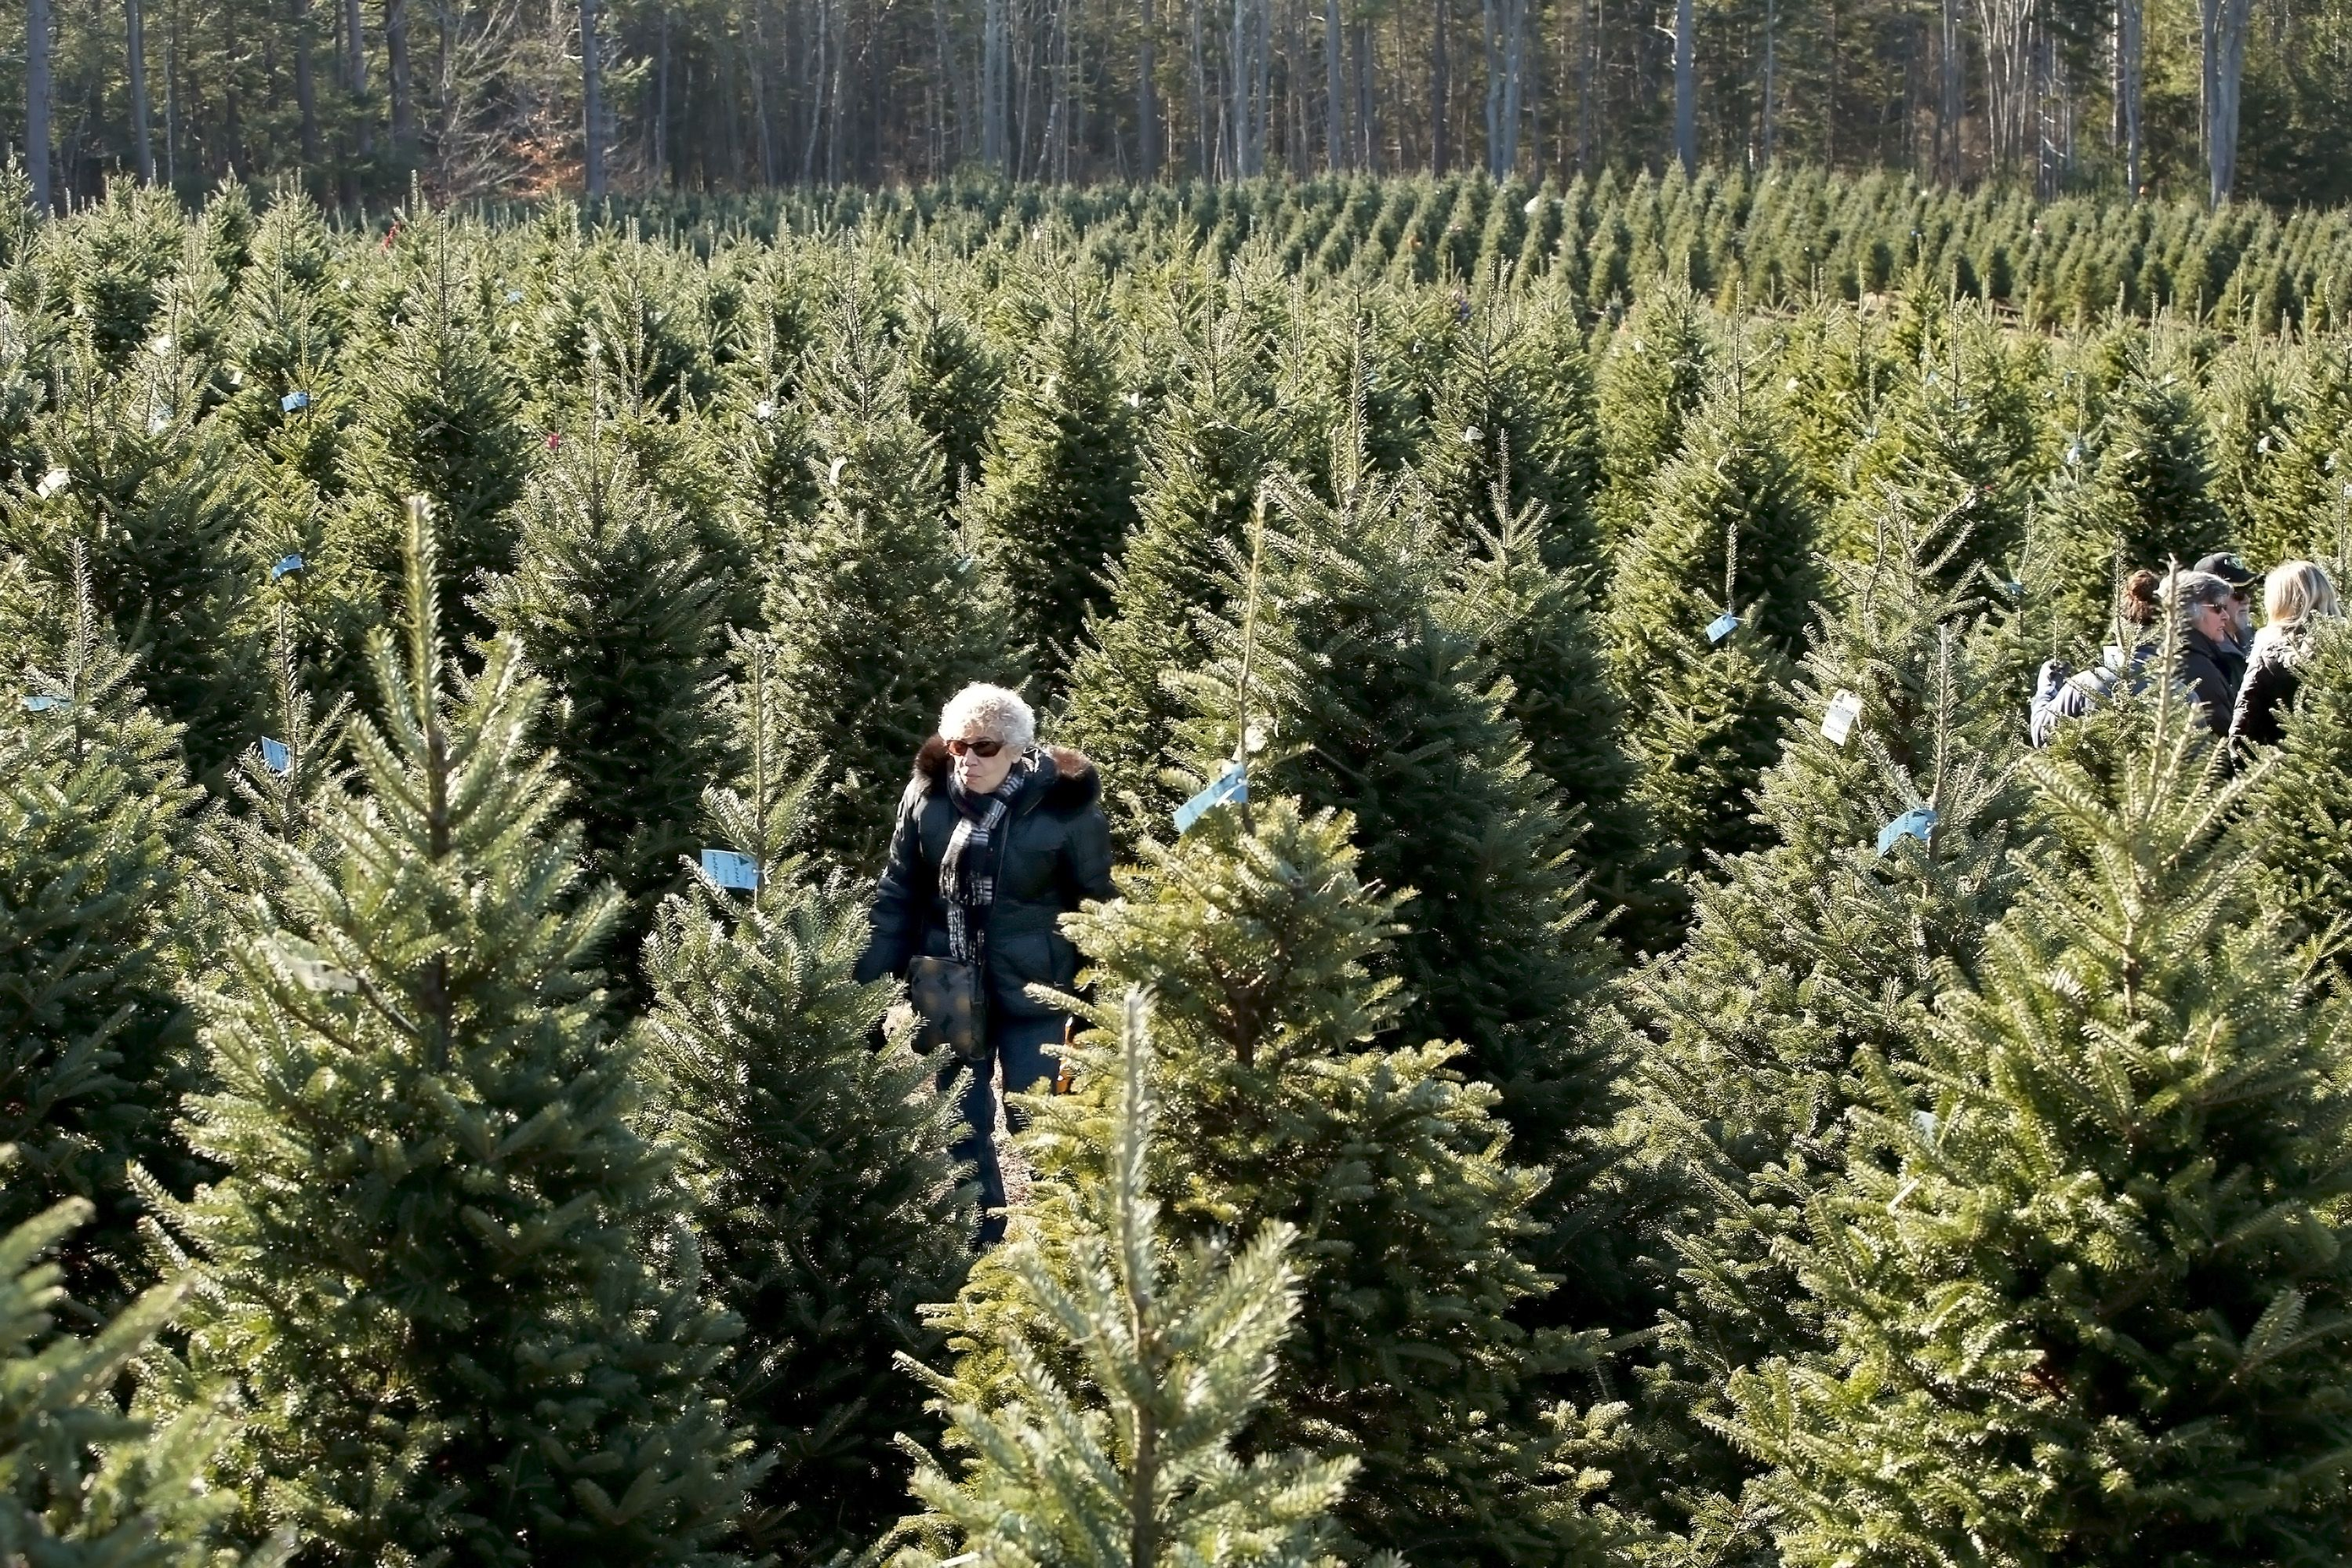 Christmas Tree Shortage.Christmas Tree Shortage In United States Could Increase Cost